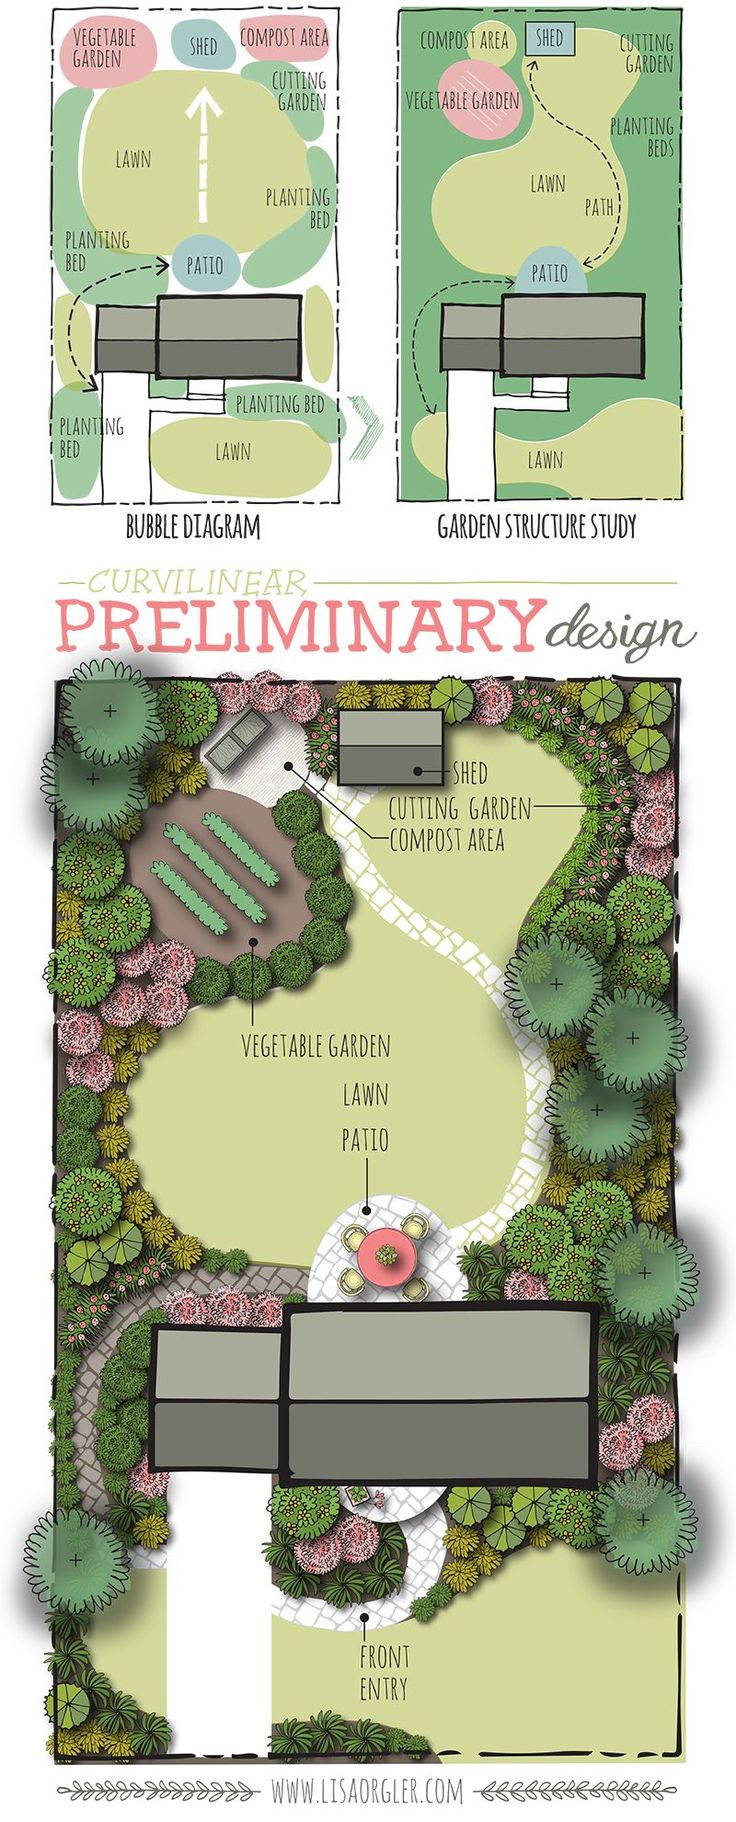 About a year ago I did a series of posts that showcased three parts of the design process. For those that struggle with how to start their landscape design this process is amazing. The idea is to arrange your spaces conceptually with bubbles, move those bubbles towards strong shapes, then finally place plant materials to reinforce your outdoor rooms. Click on the steps below to learn about them in more detail. 1. Bubble (or Functional) Diagrams 2. Garden Structure Studies 3. Prelimina...